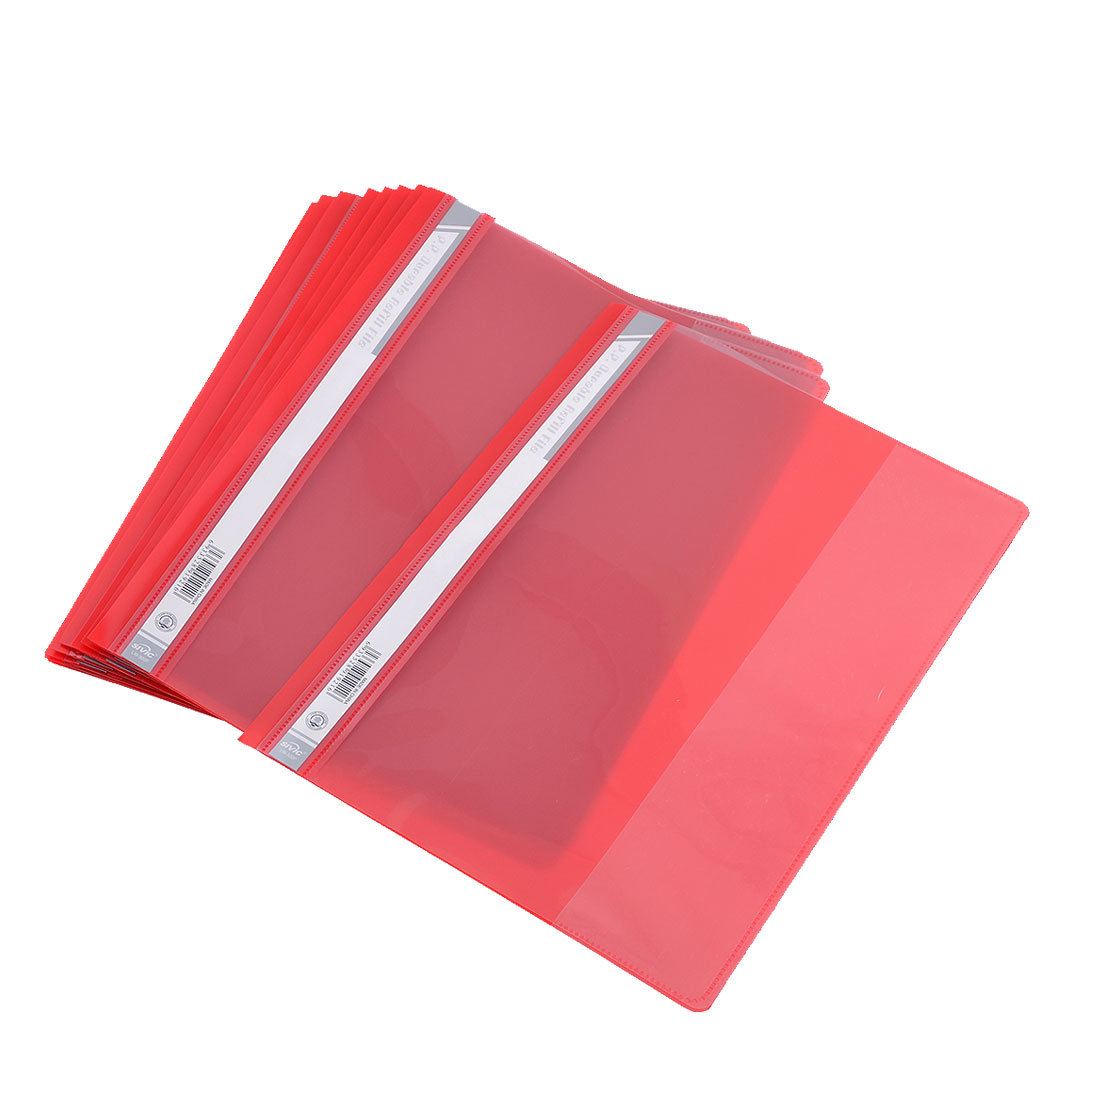 12 Pcs Size A4 Paper File Document Case Conference Folder Red Clear